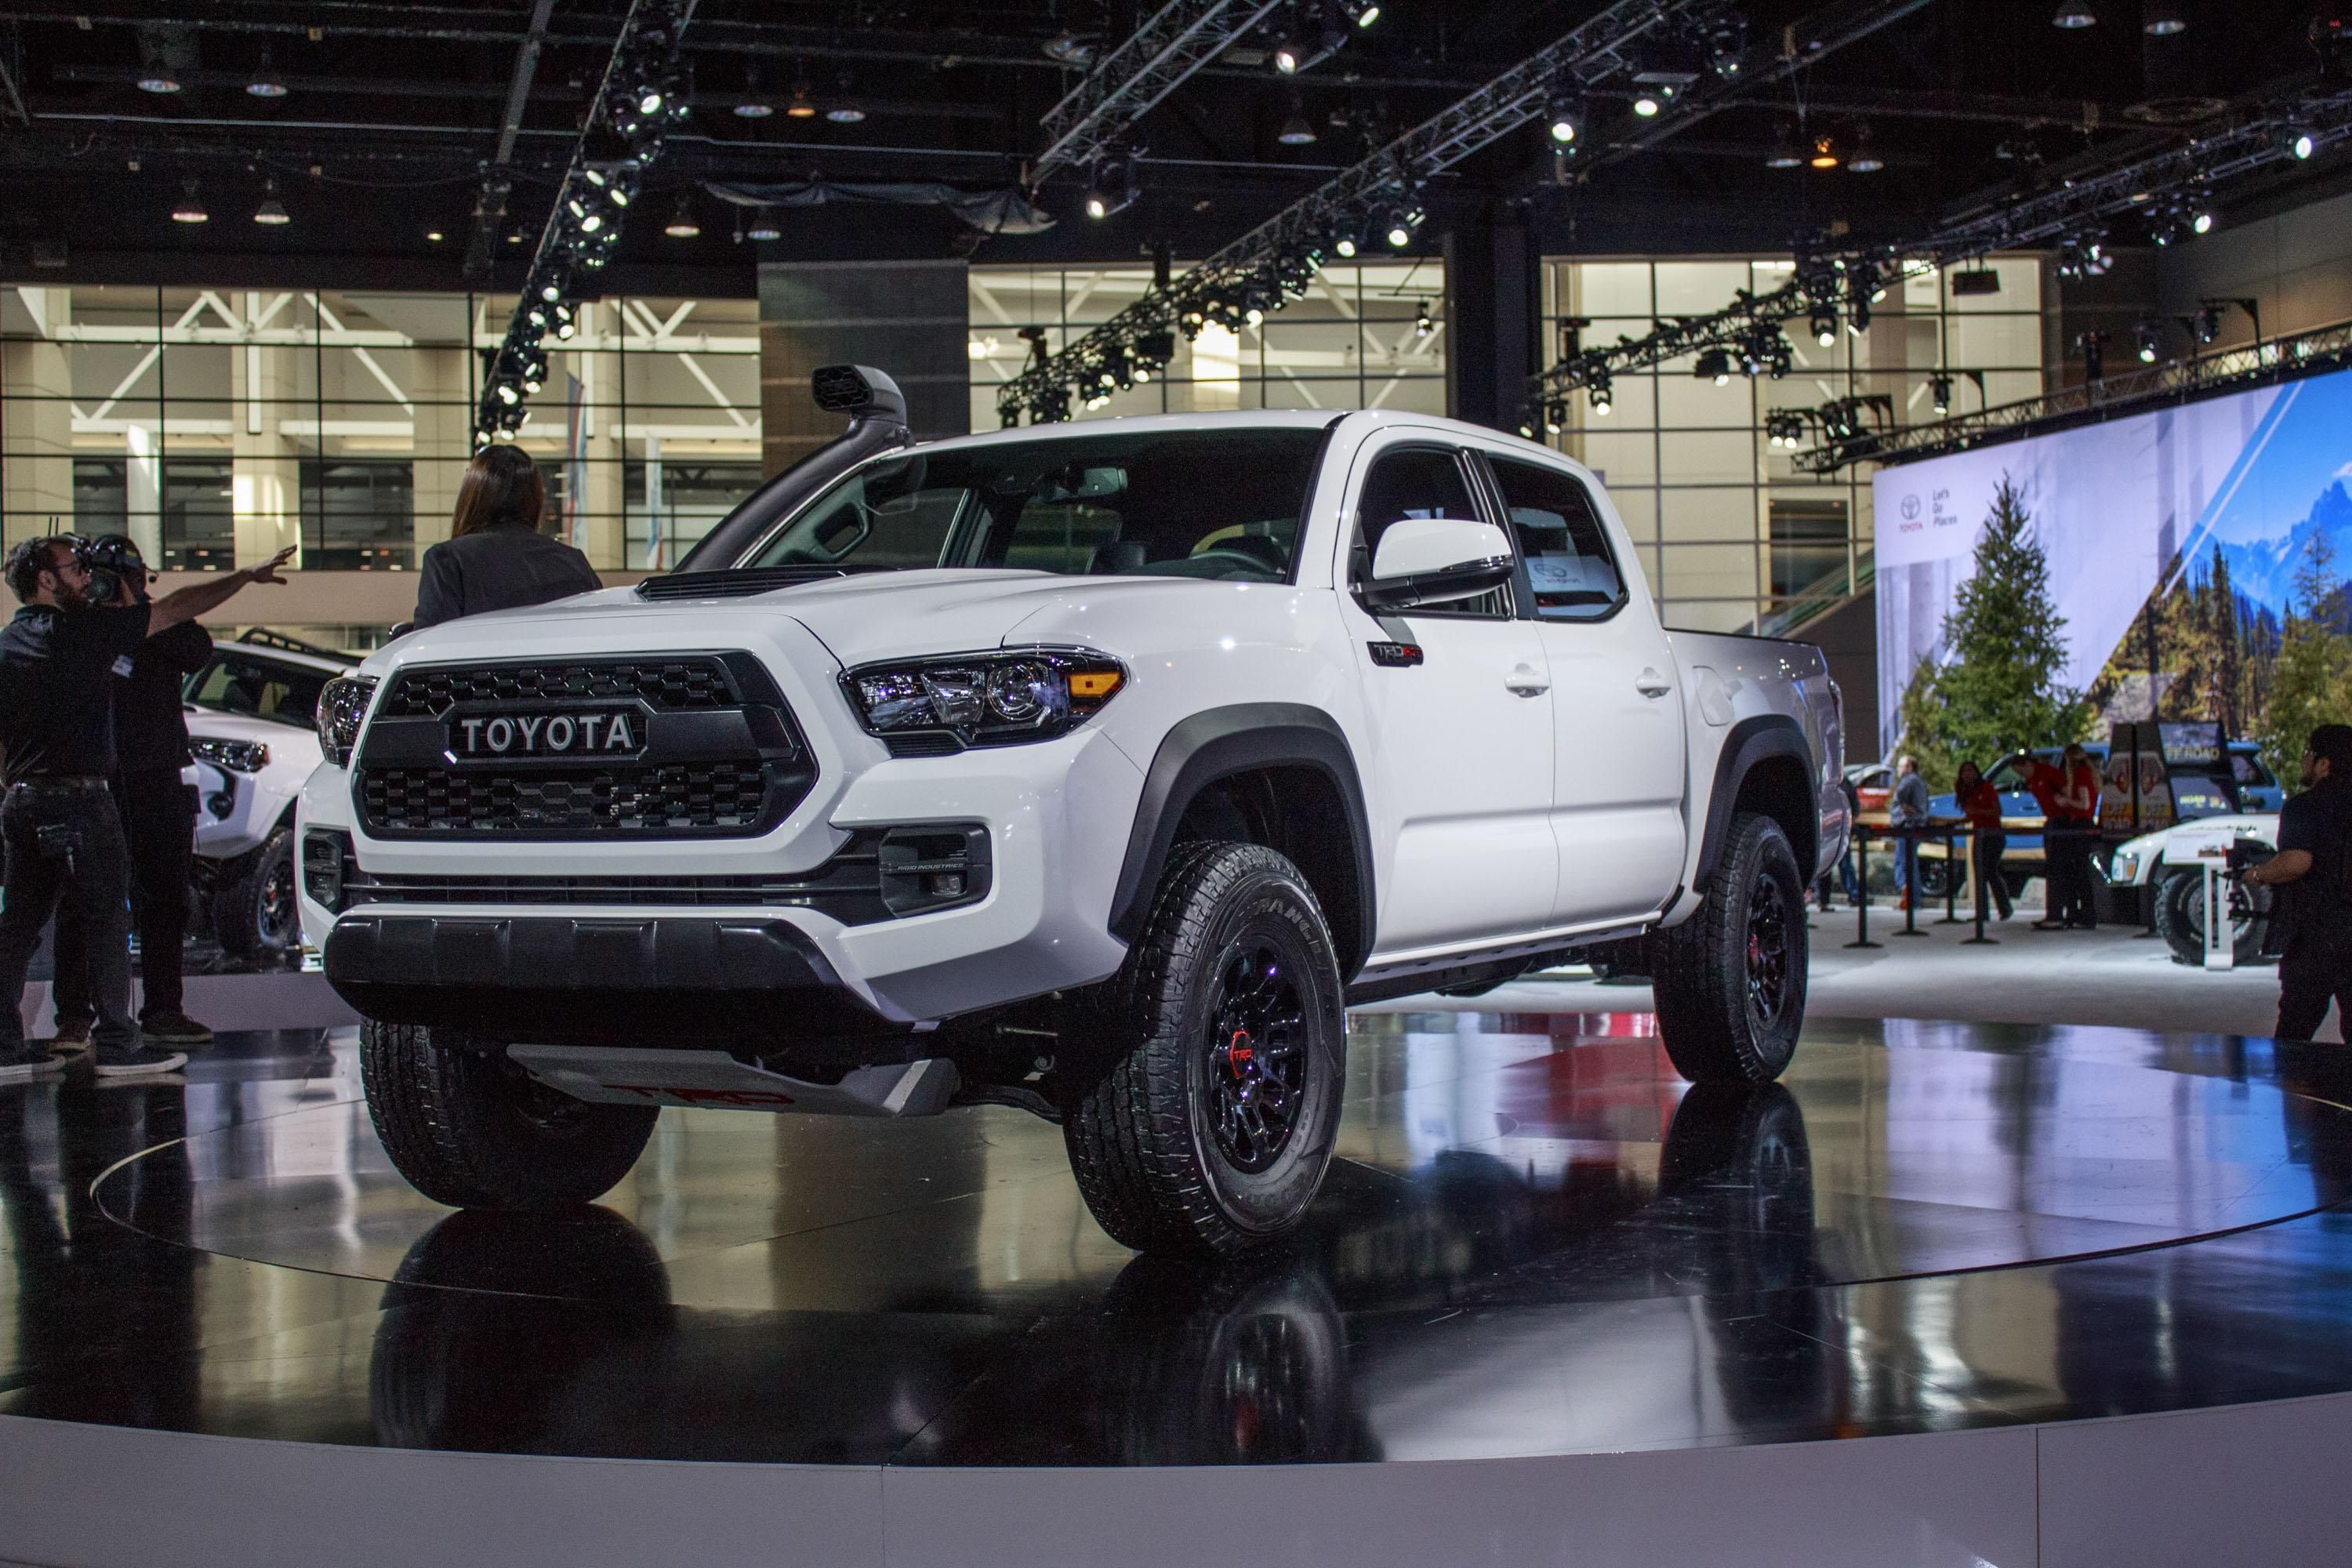 2019 Toyota Tacoma Trd Pro Review - Top Speed within Tacoma